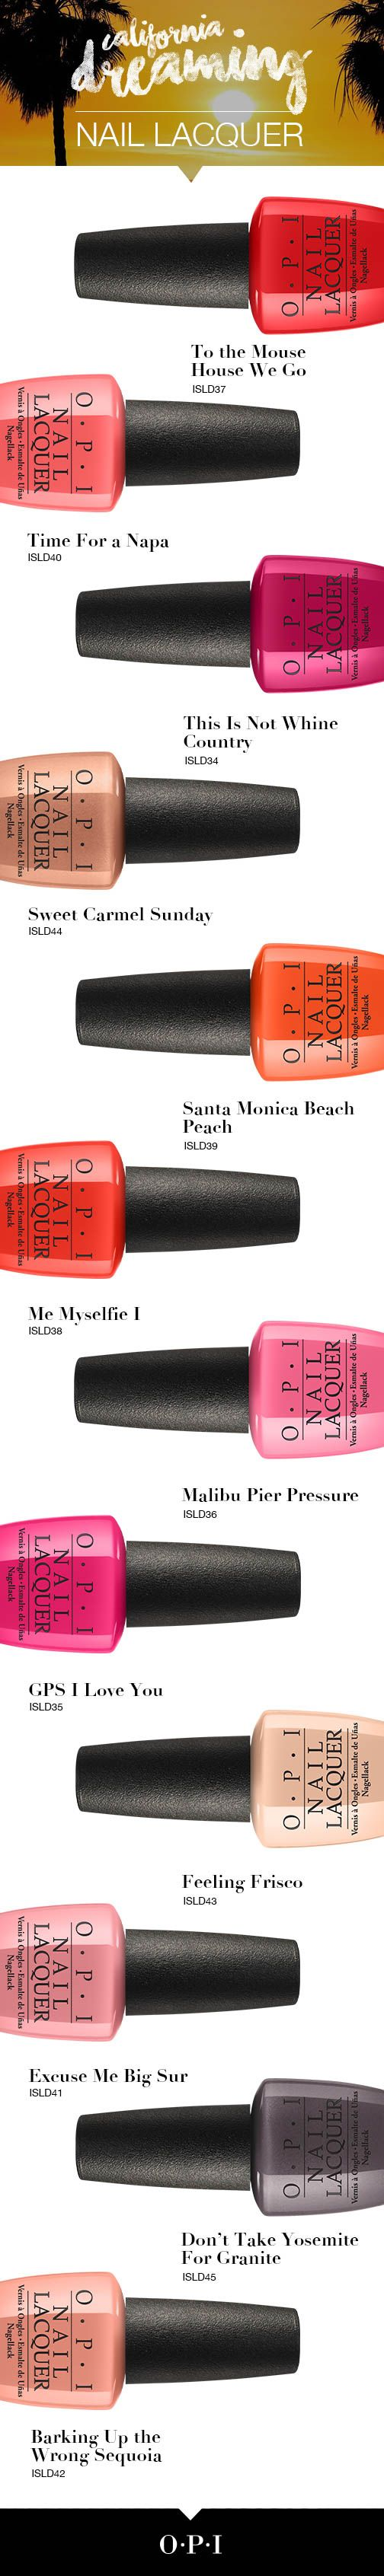 Inspired by the coastline, the OPI California Dreaming collection is a palette of fun shades for your next west coast adventure.